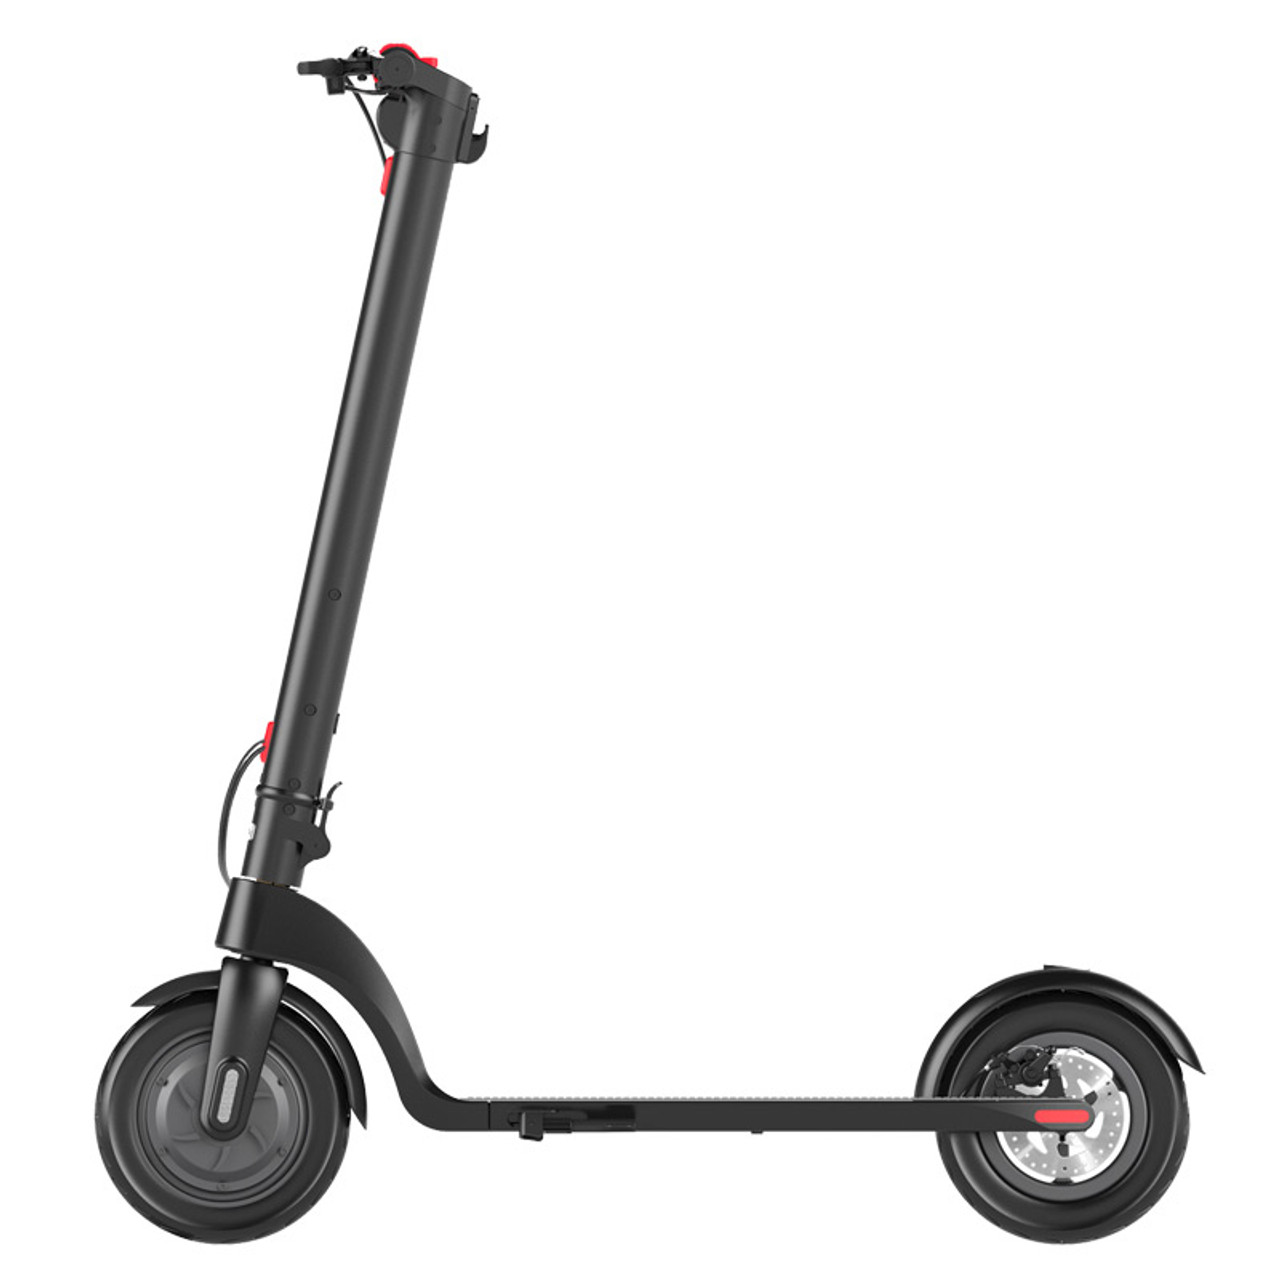 Folding Electric Scooter >> X7 10 Inch Foldable Electric Scooter At Discounted Price For Sale